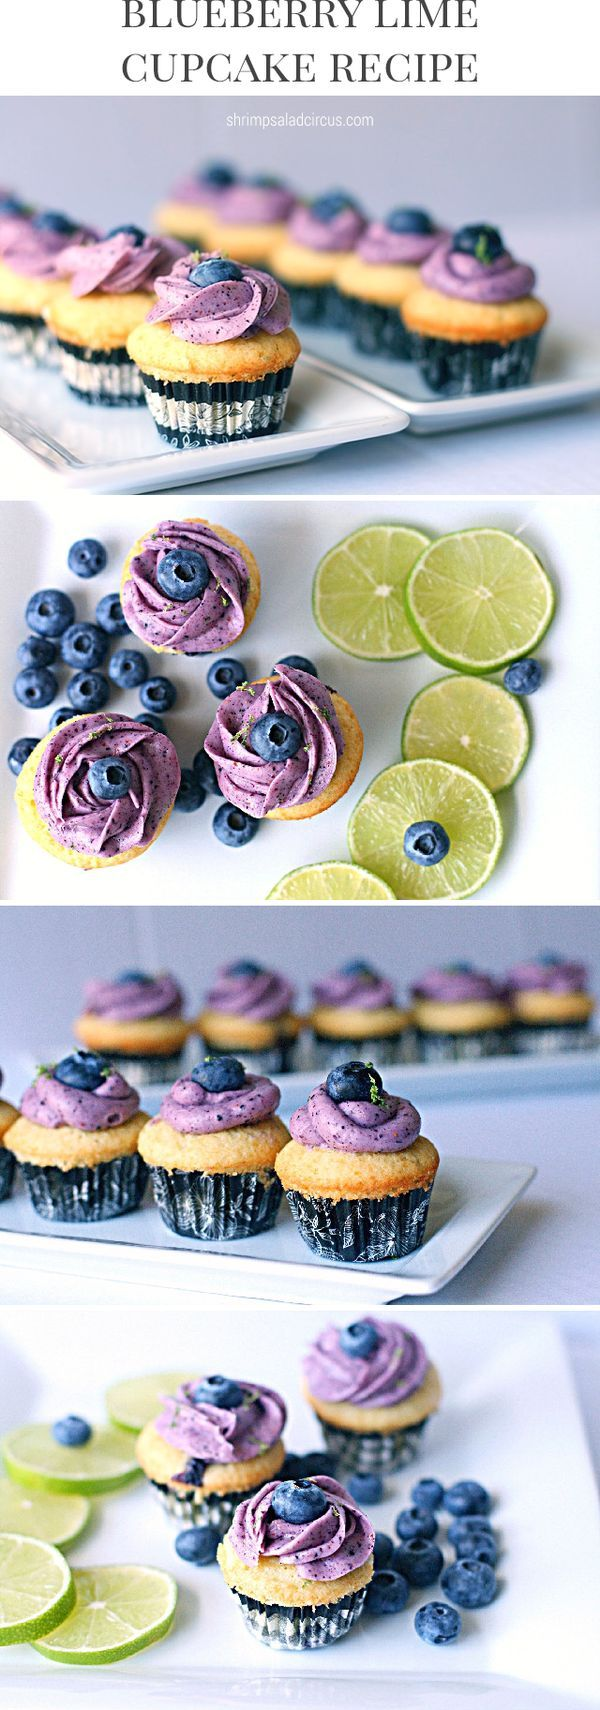 Lime Blueberry Cupcake Recipe with Fresh Fruit, Juice, and Natural Ingredients - The perfect party food or sweet snack or dessert treat!